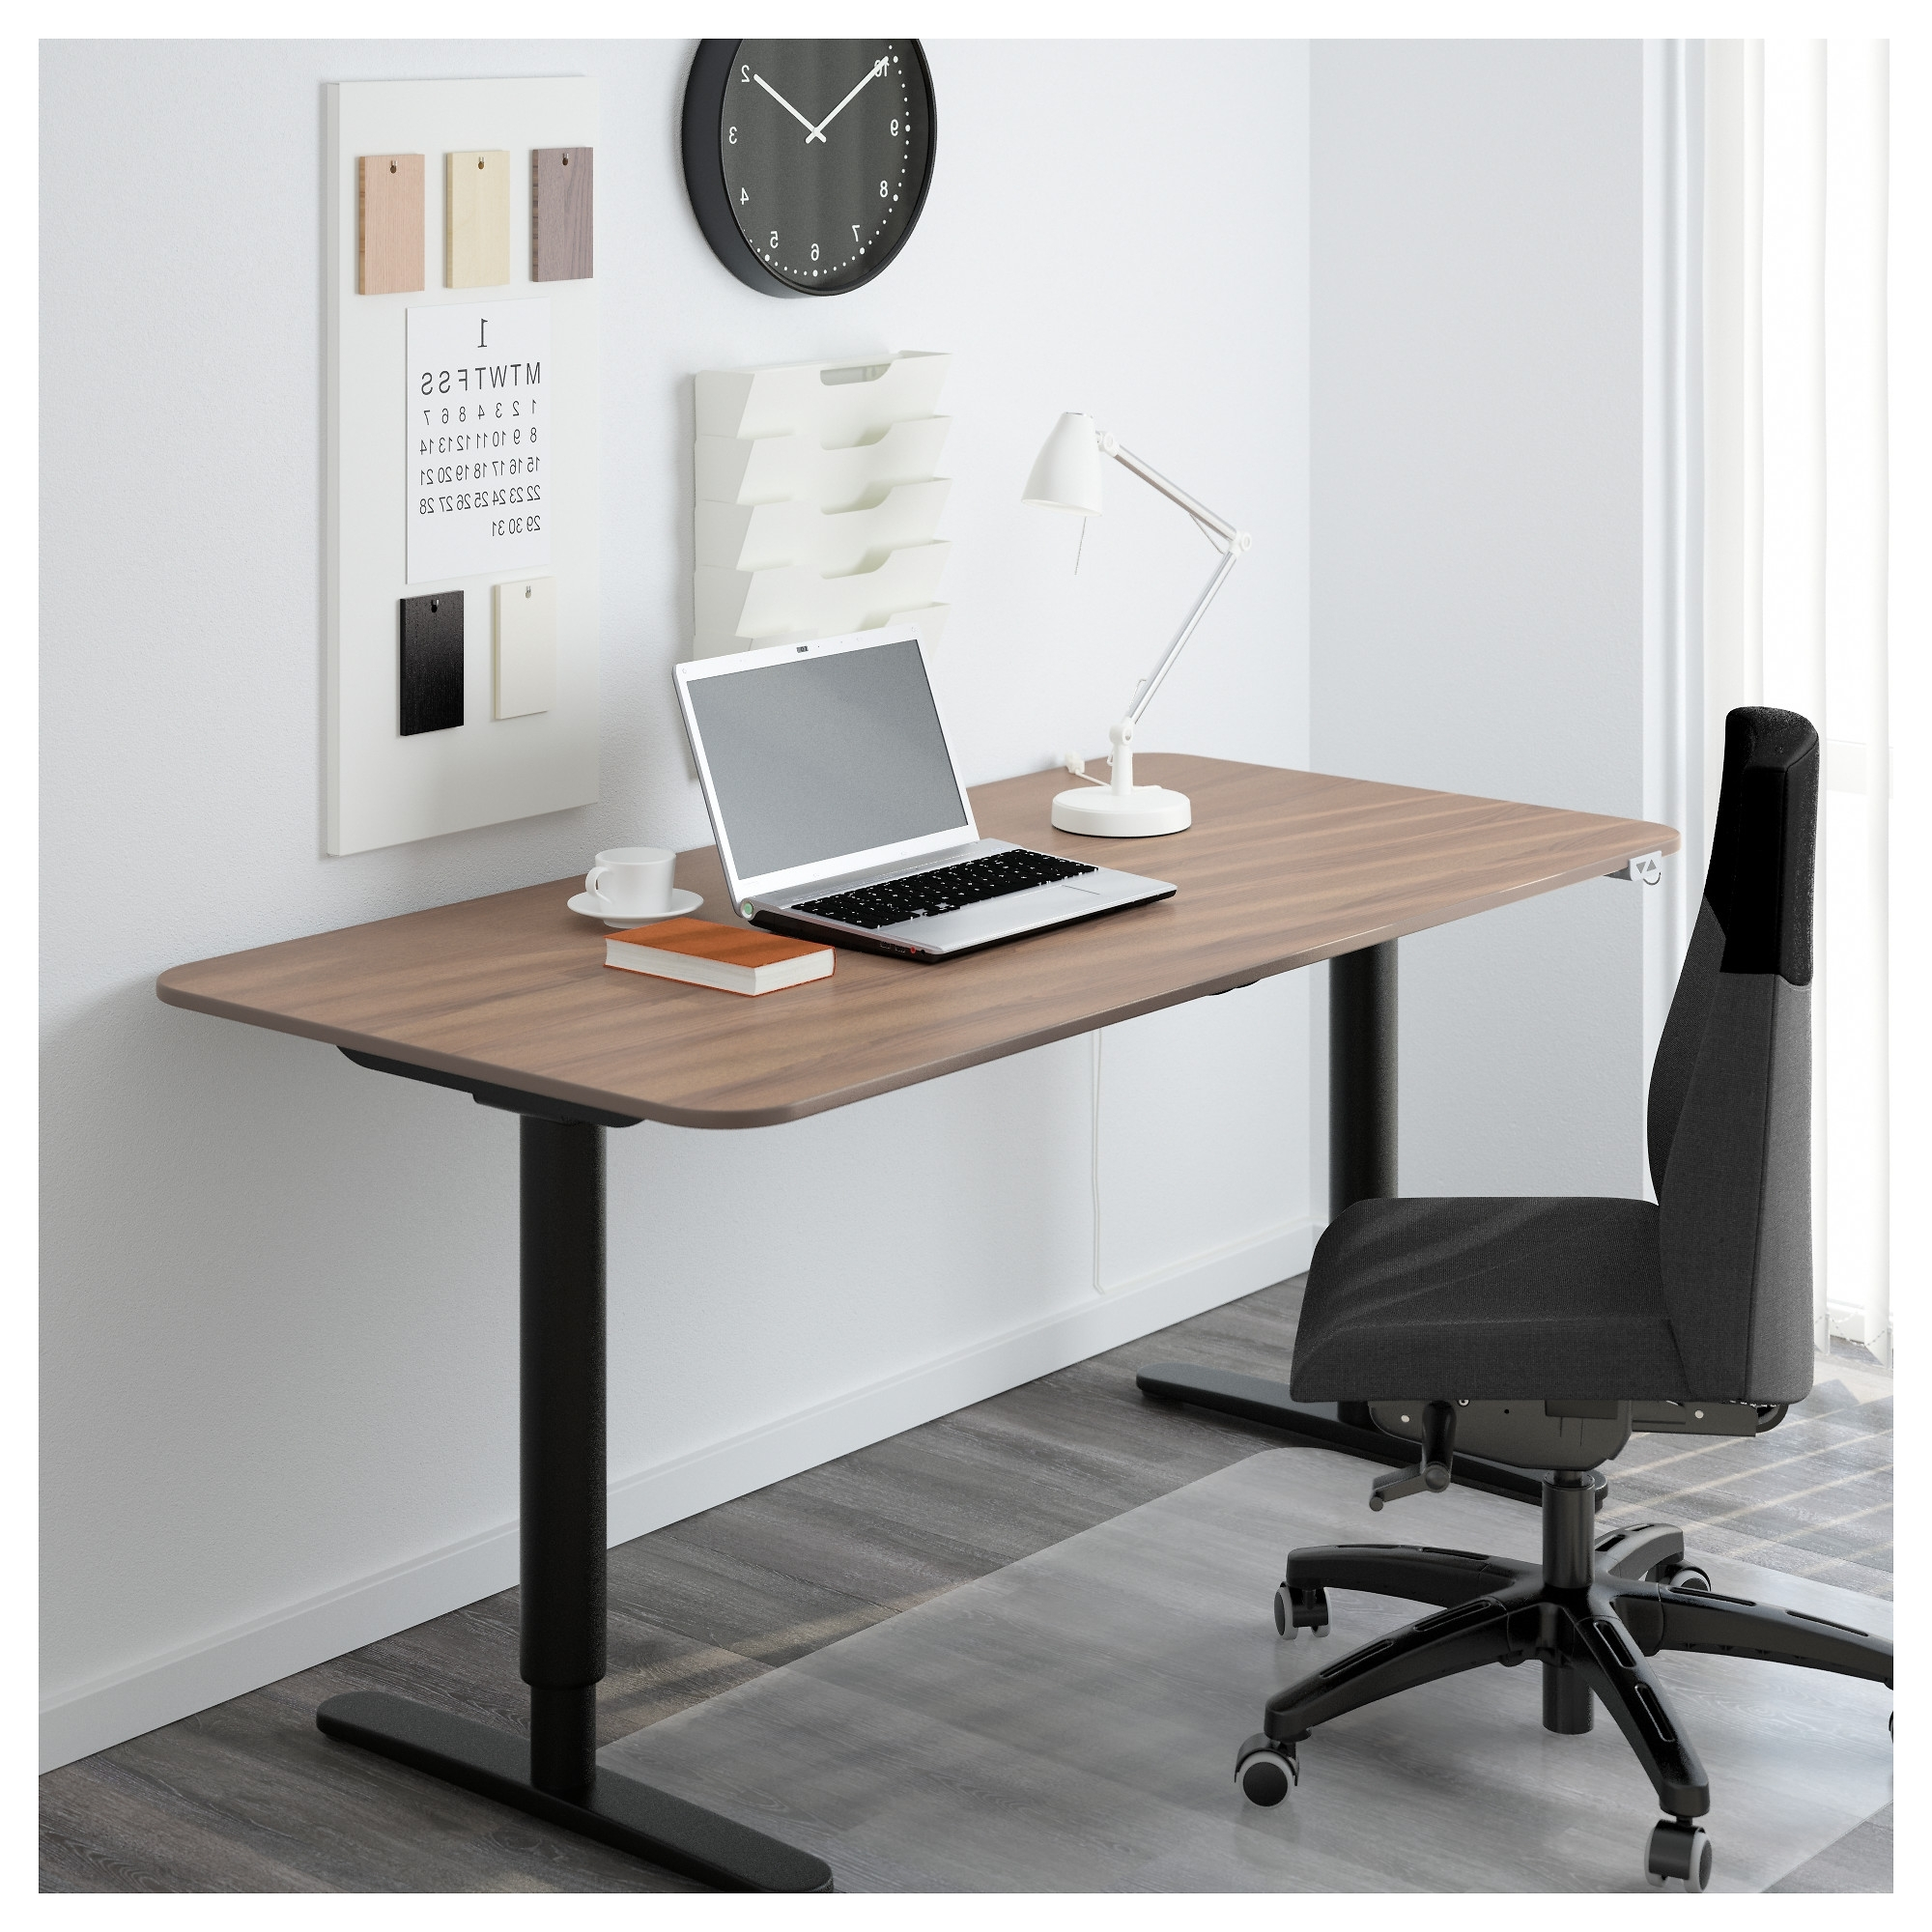 Trendy Ikea Galant Computer Desks Intended For Bekant Desk Sit/stand – Black Brown/white – Ikea (View 16 of 20)